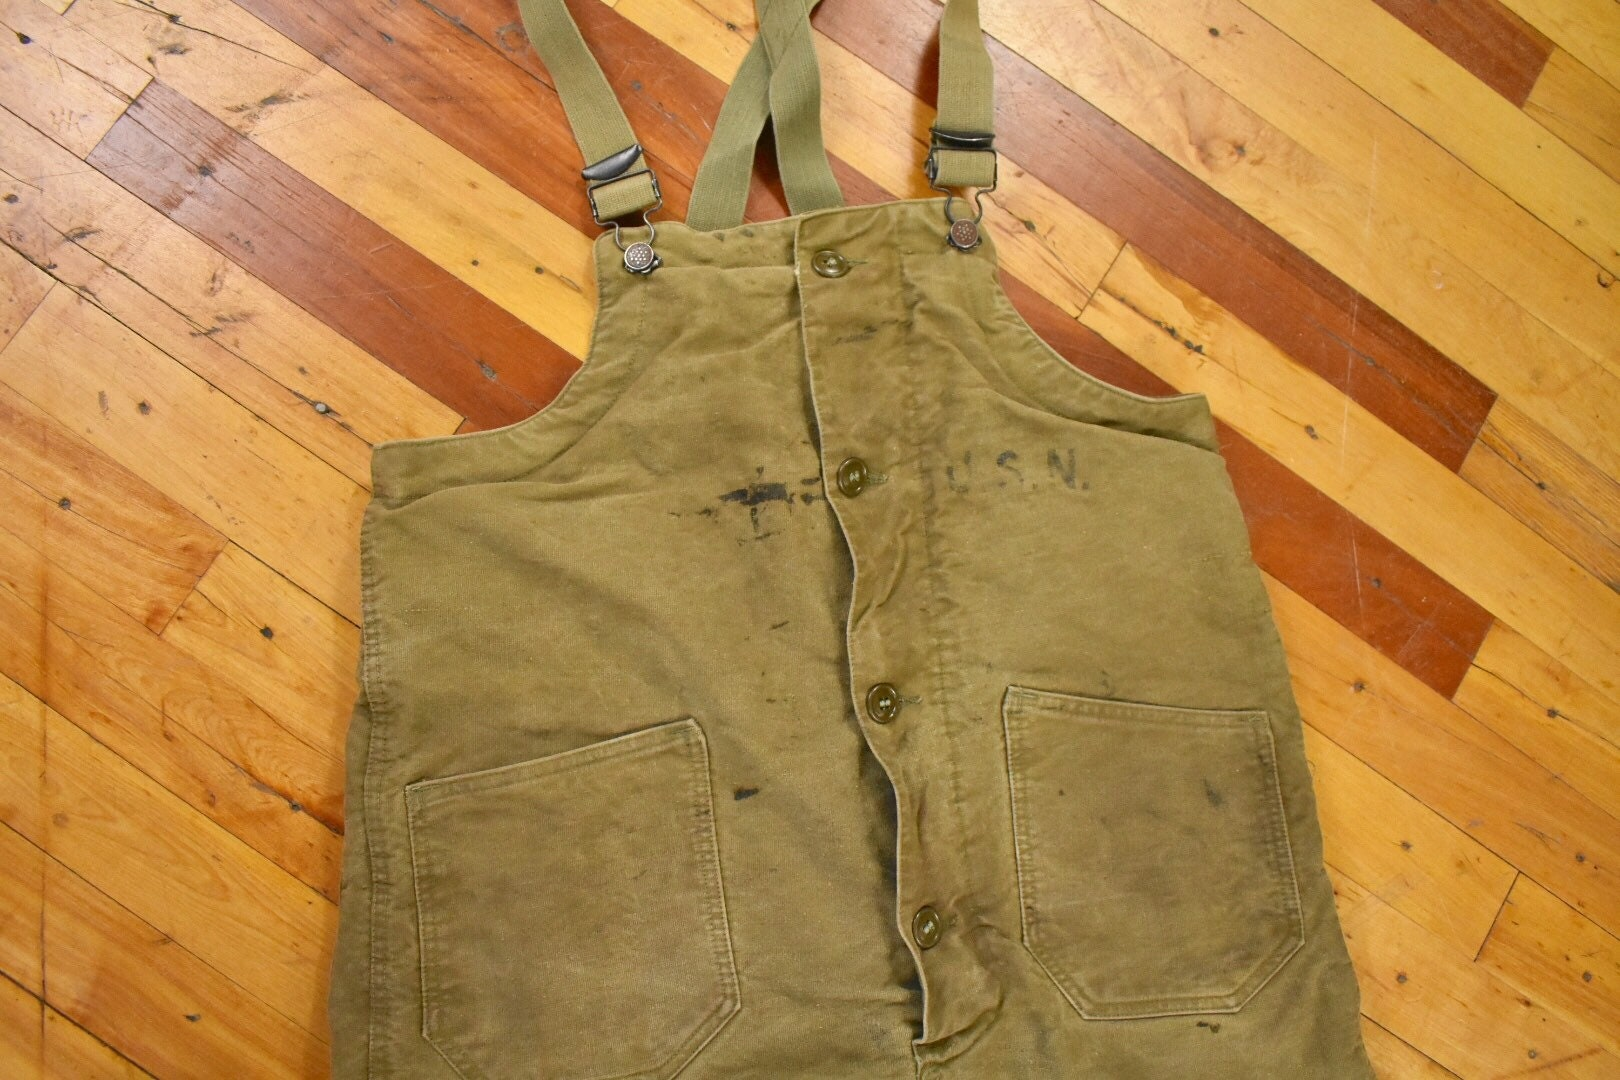 1940s Mens Ties | Wide Ties & Painted Ties 40S Wwii Era Small Overalls Usn Navy Wool Lined Mens Vintage Military Issue $50.00 AT vintagedancer.com